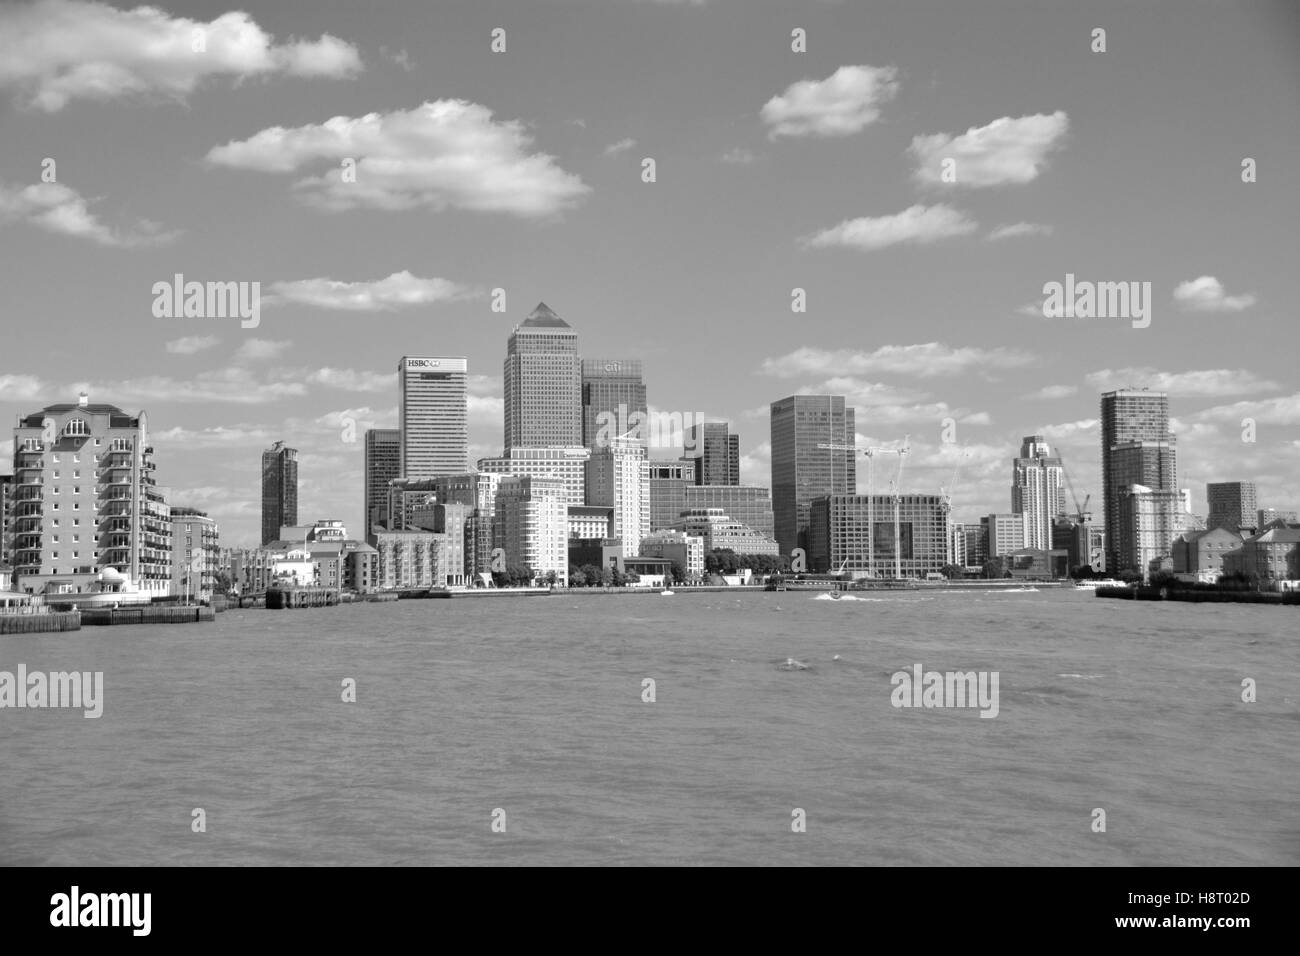 Black And White City Scape Stock Photos Amp Black And White